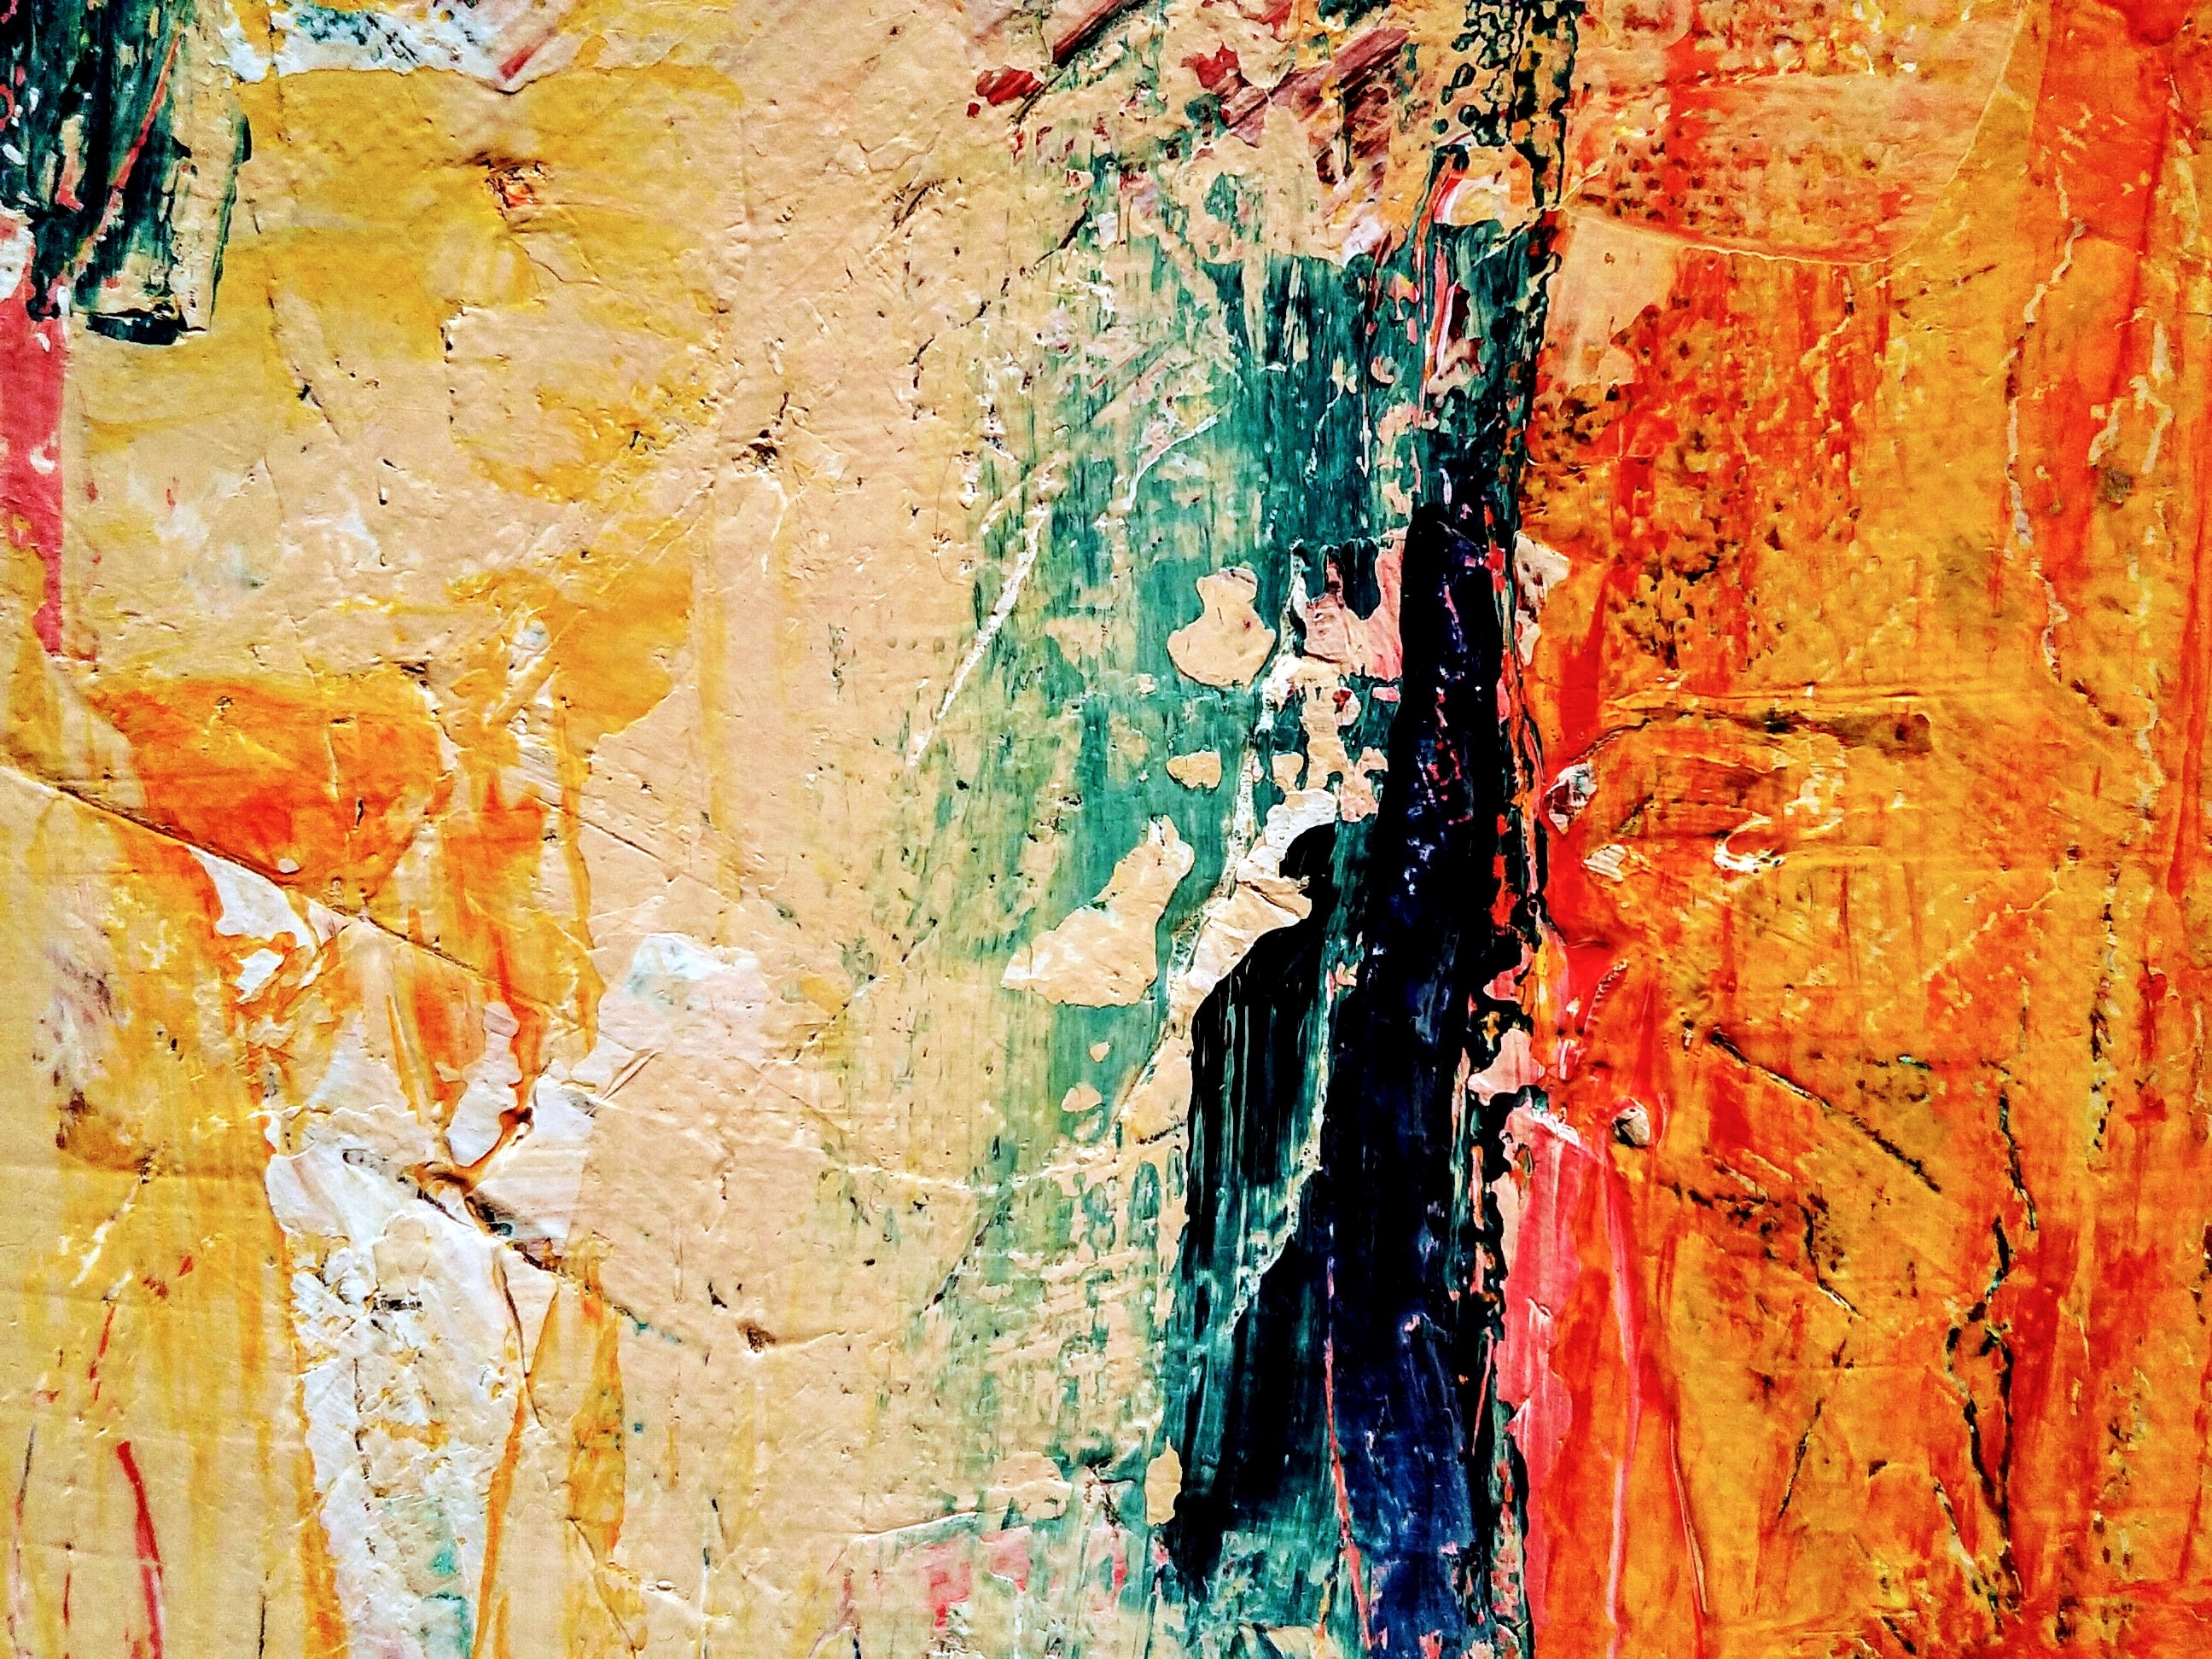 Picture Abstract Art In Hd Painting Free: Download Free Images & Stock